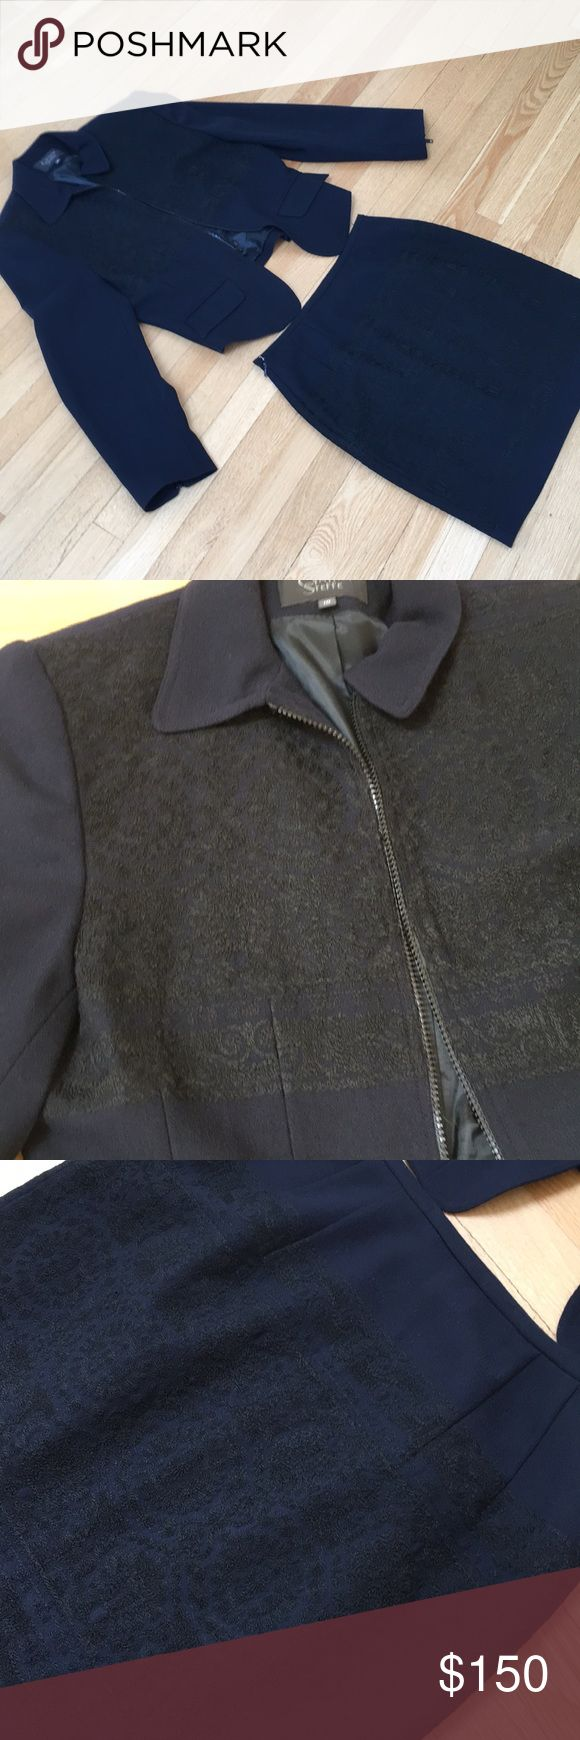 Cynthia Steffe Navy Wool Suit / black embroidery Great condition and darling short skirt suit with short crop jacket.  Super feminine and sexy!  Beautifully made! Cynthia Steffe Dresses